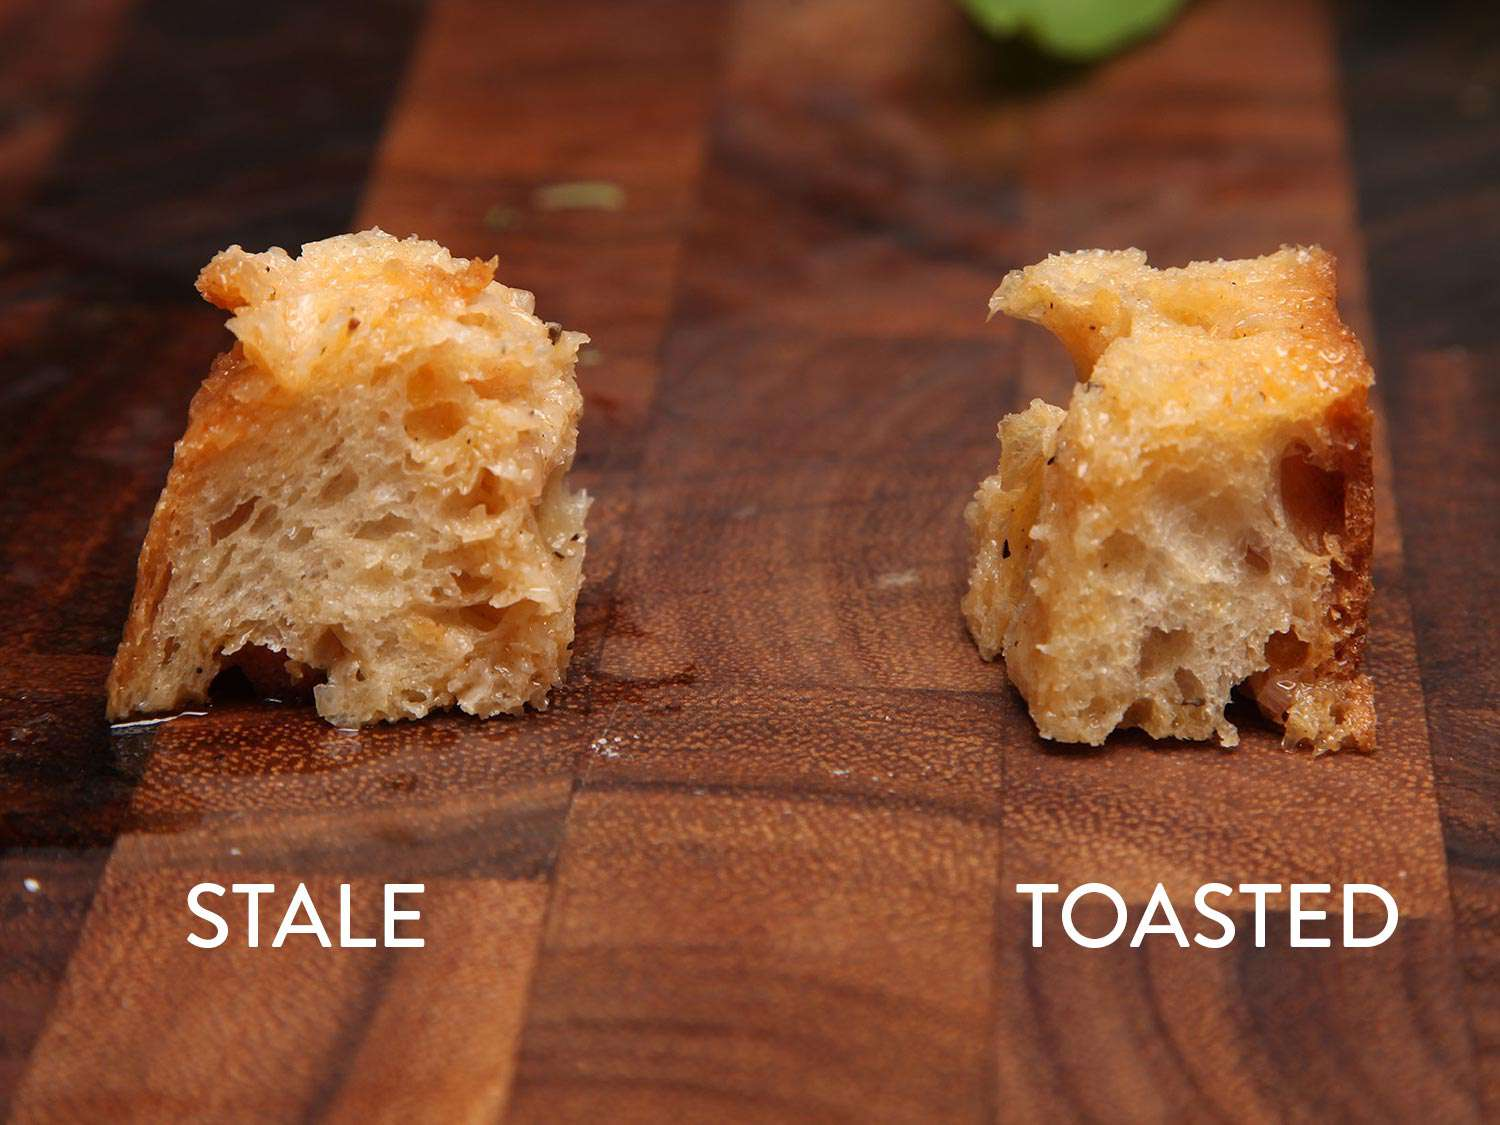 A comparison of two cubes of crusty bread, one stale and one toasted, showing how they absorb moisture differently